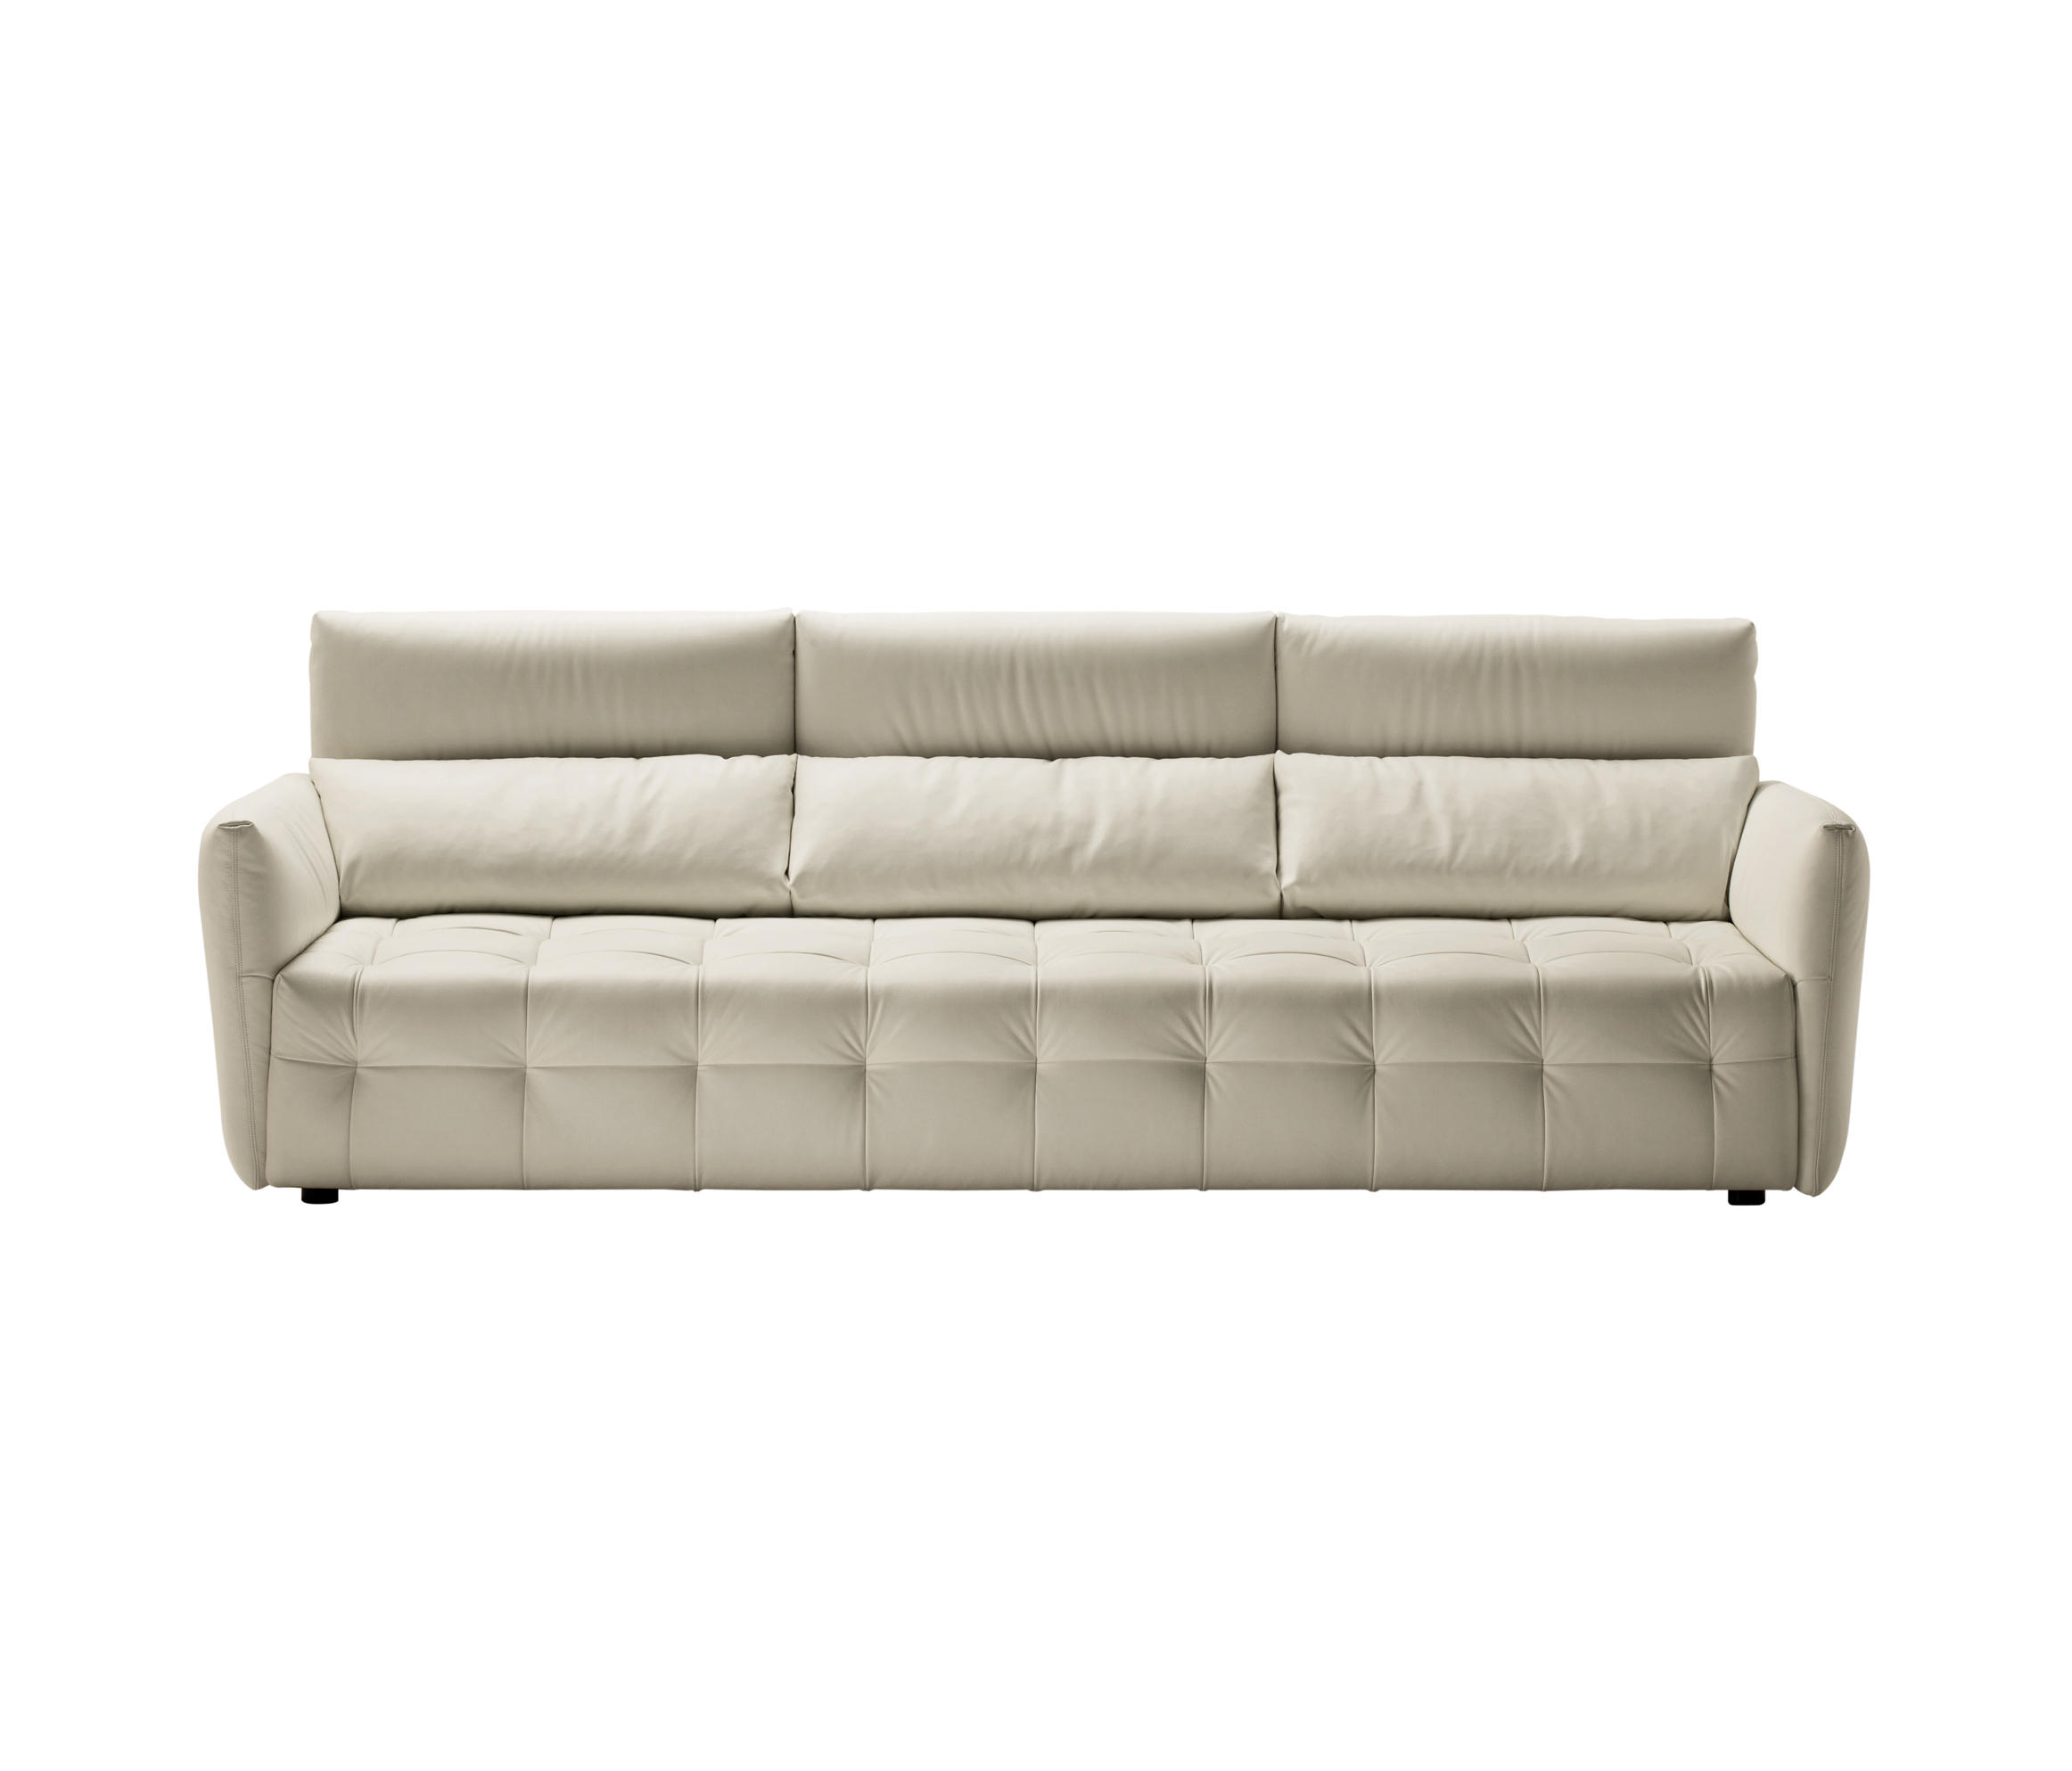 poltrona frau sofa kennedee c tables for sofas duvet from architonic